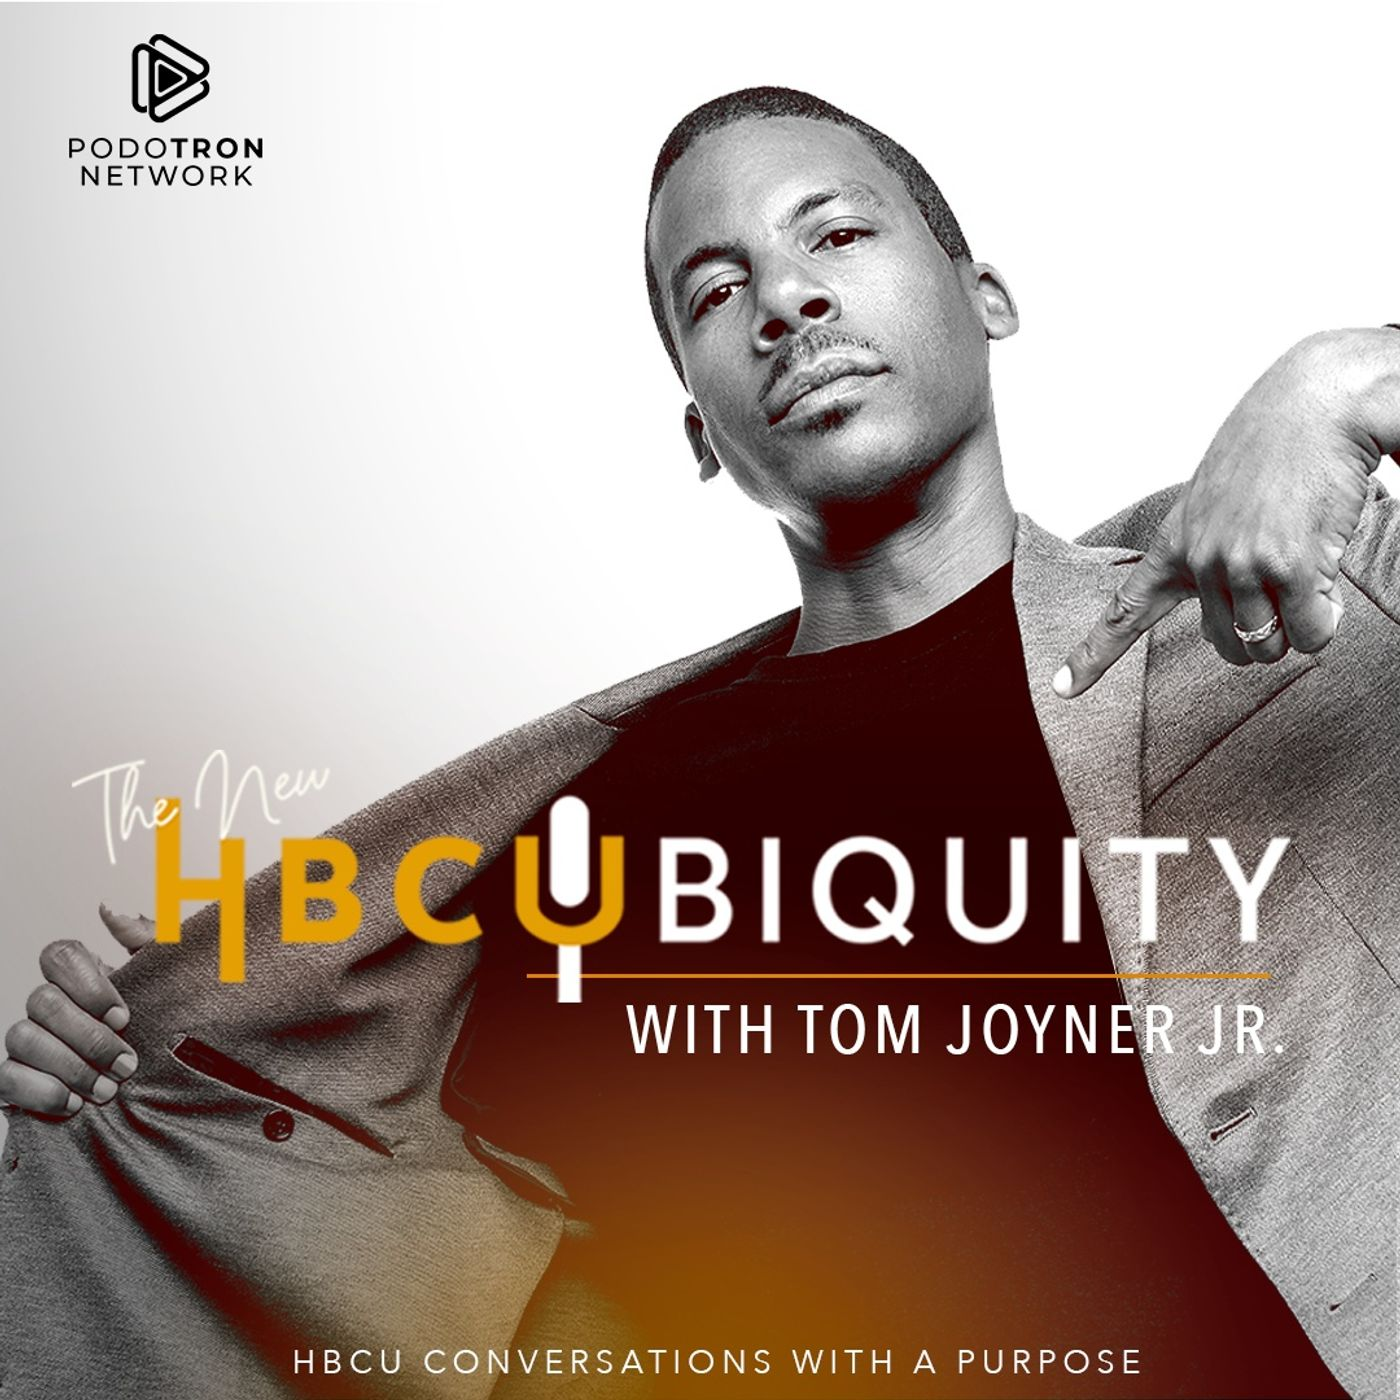 The New HBCUbiquity